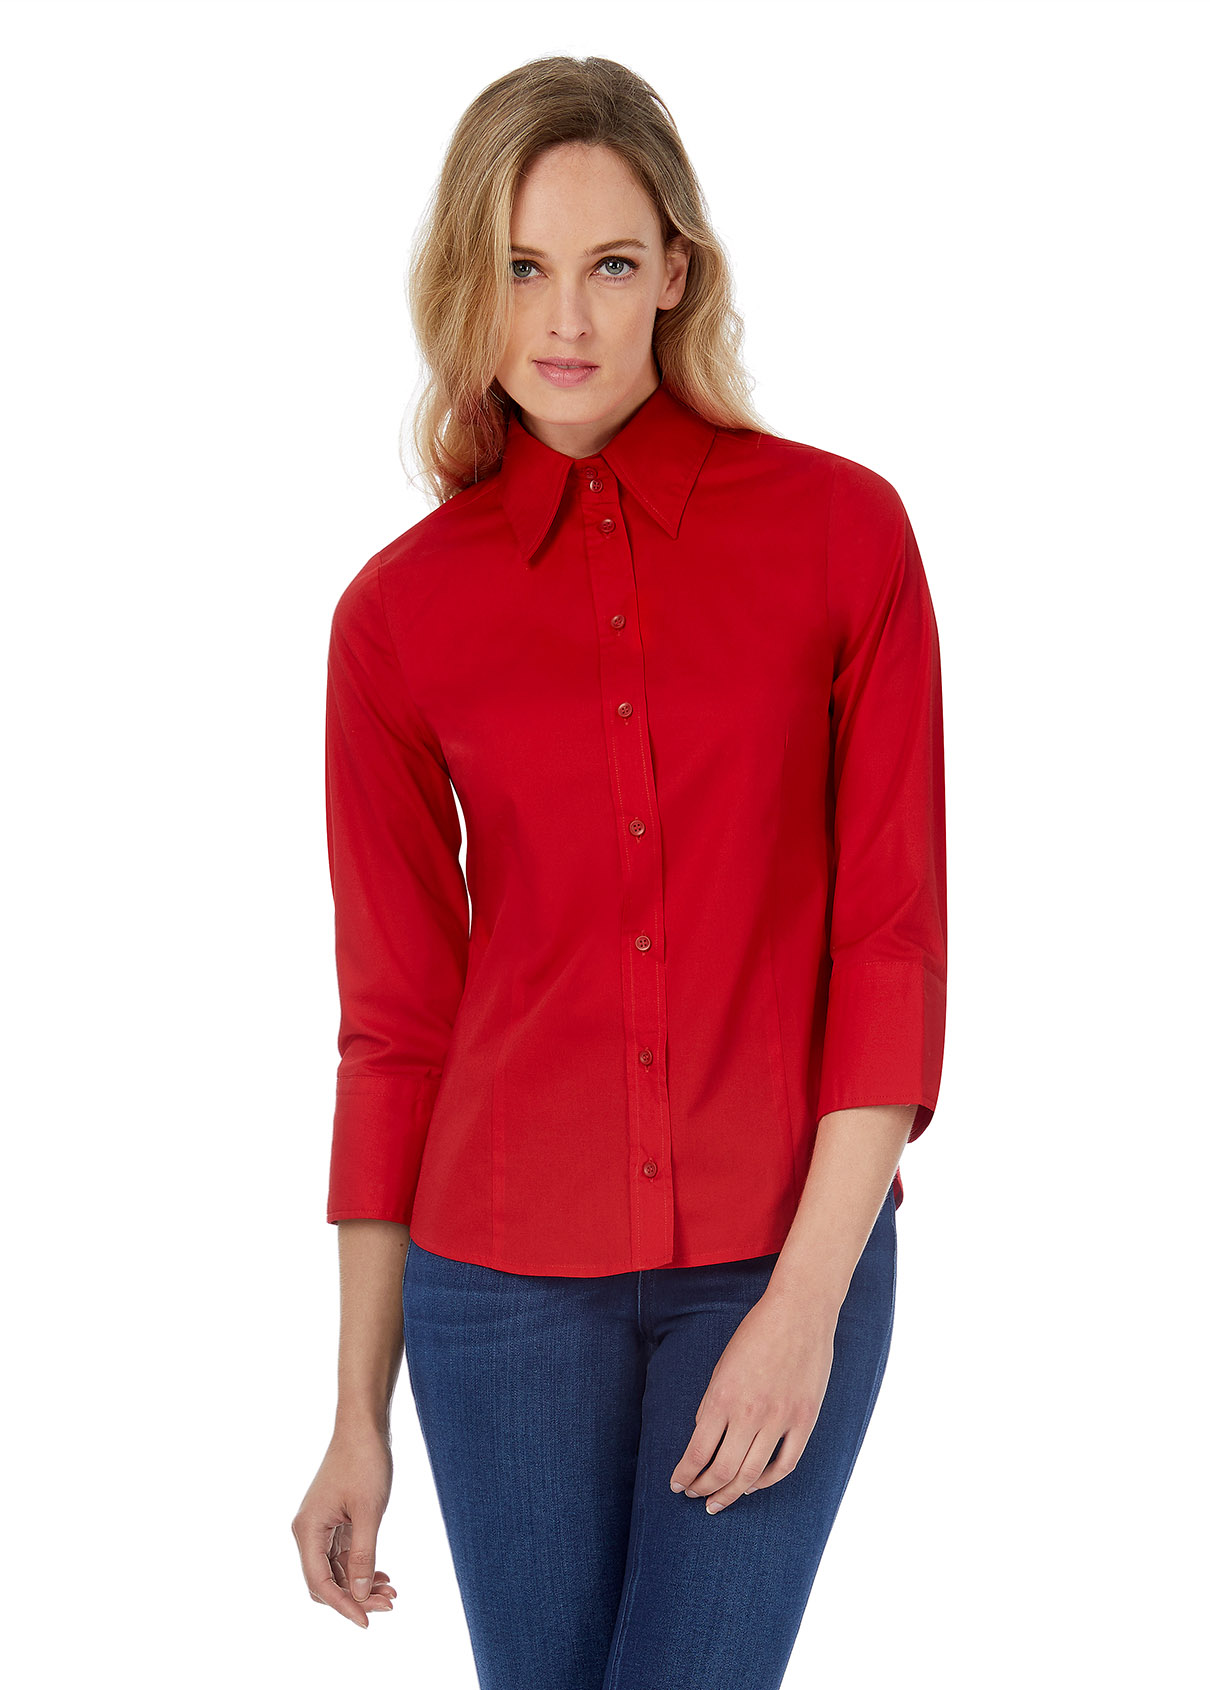 Milano deep red